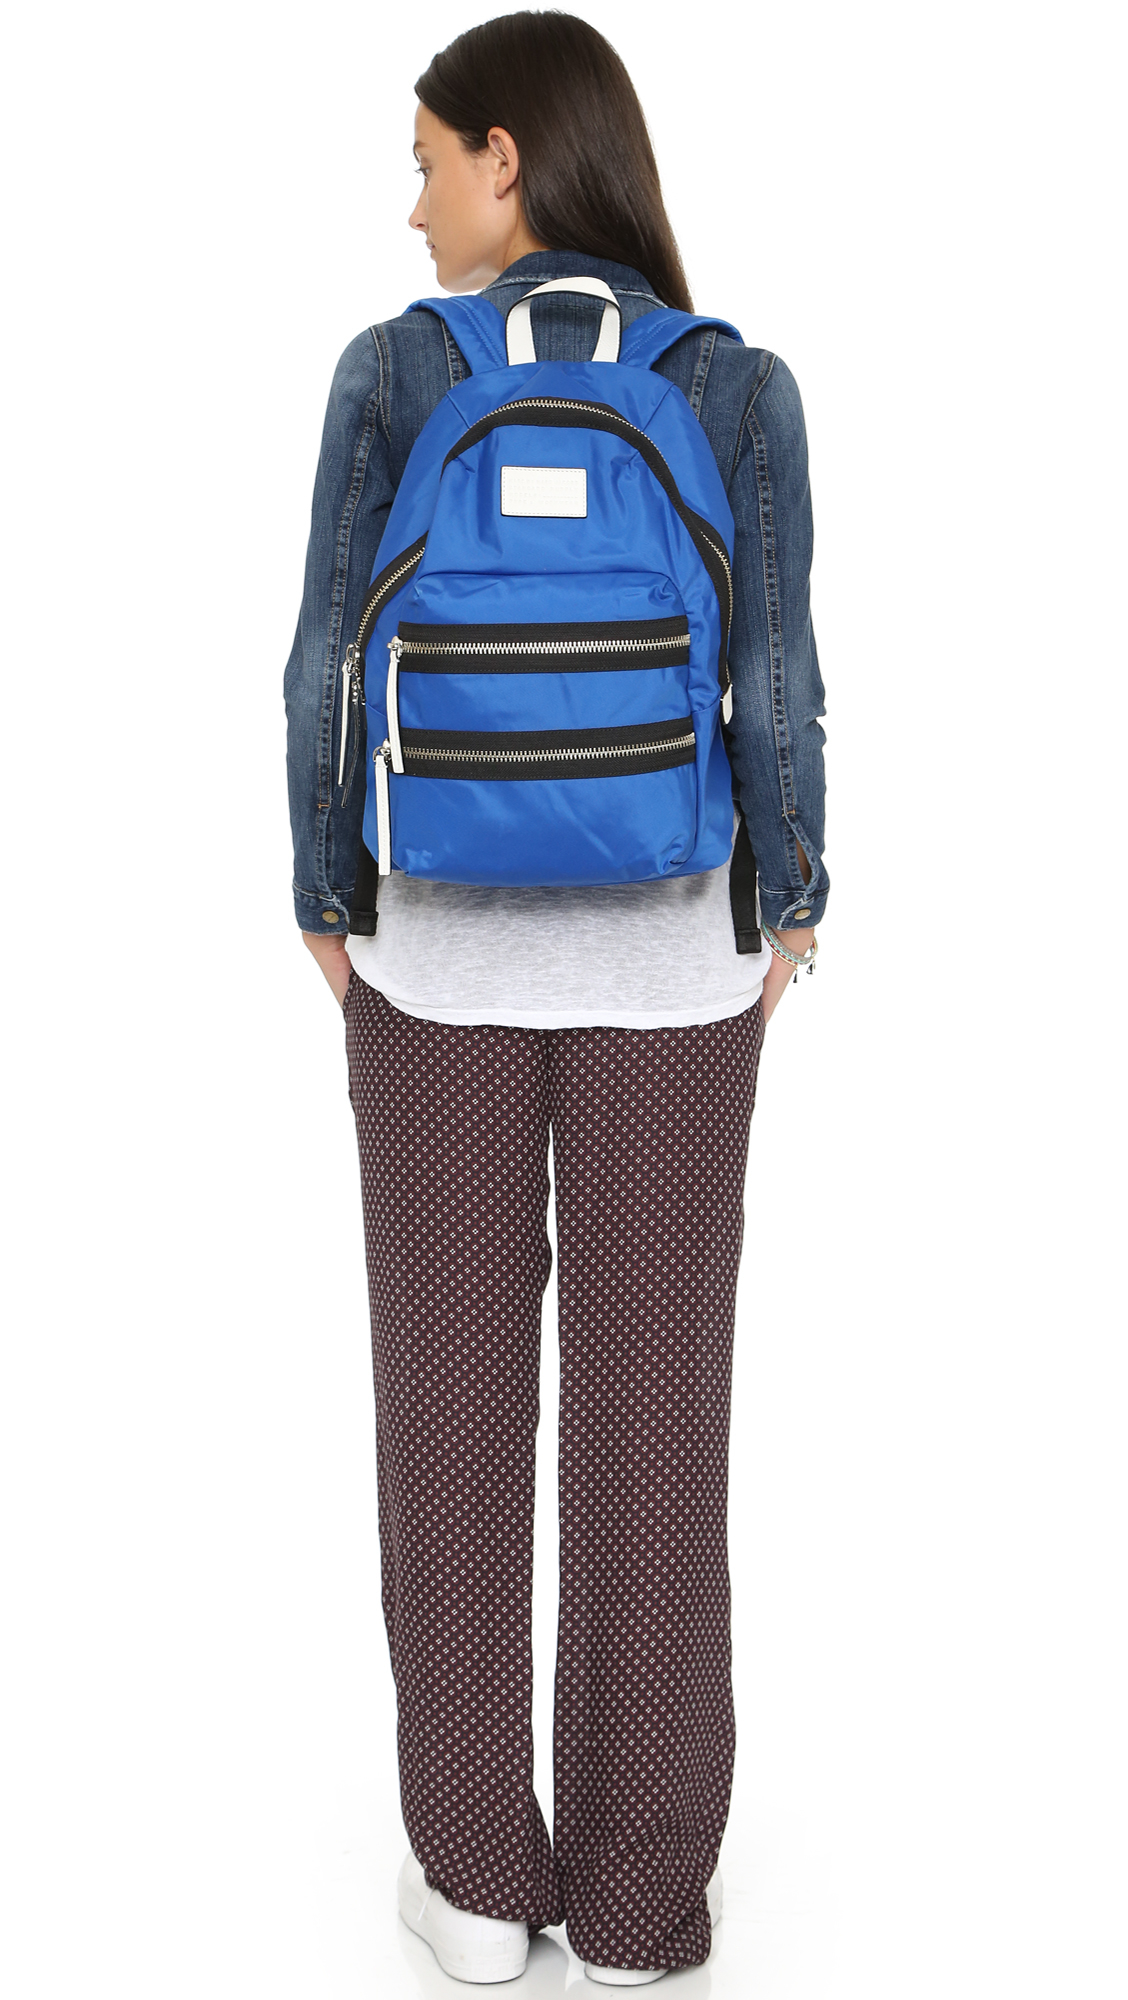 marc by marc jacobs domo arigato packrat backpack neptune blue in blue lyst. Black Bedroom Furniture Sets. Home Design Ideas